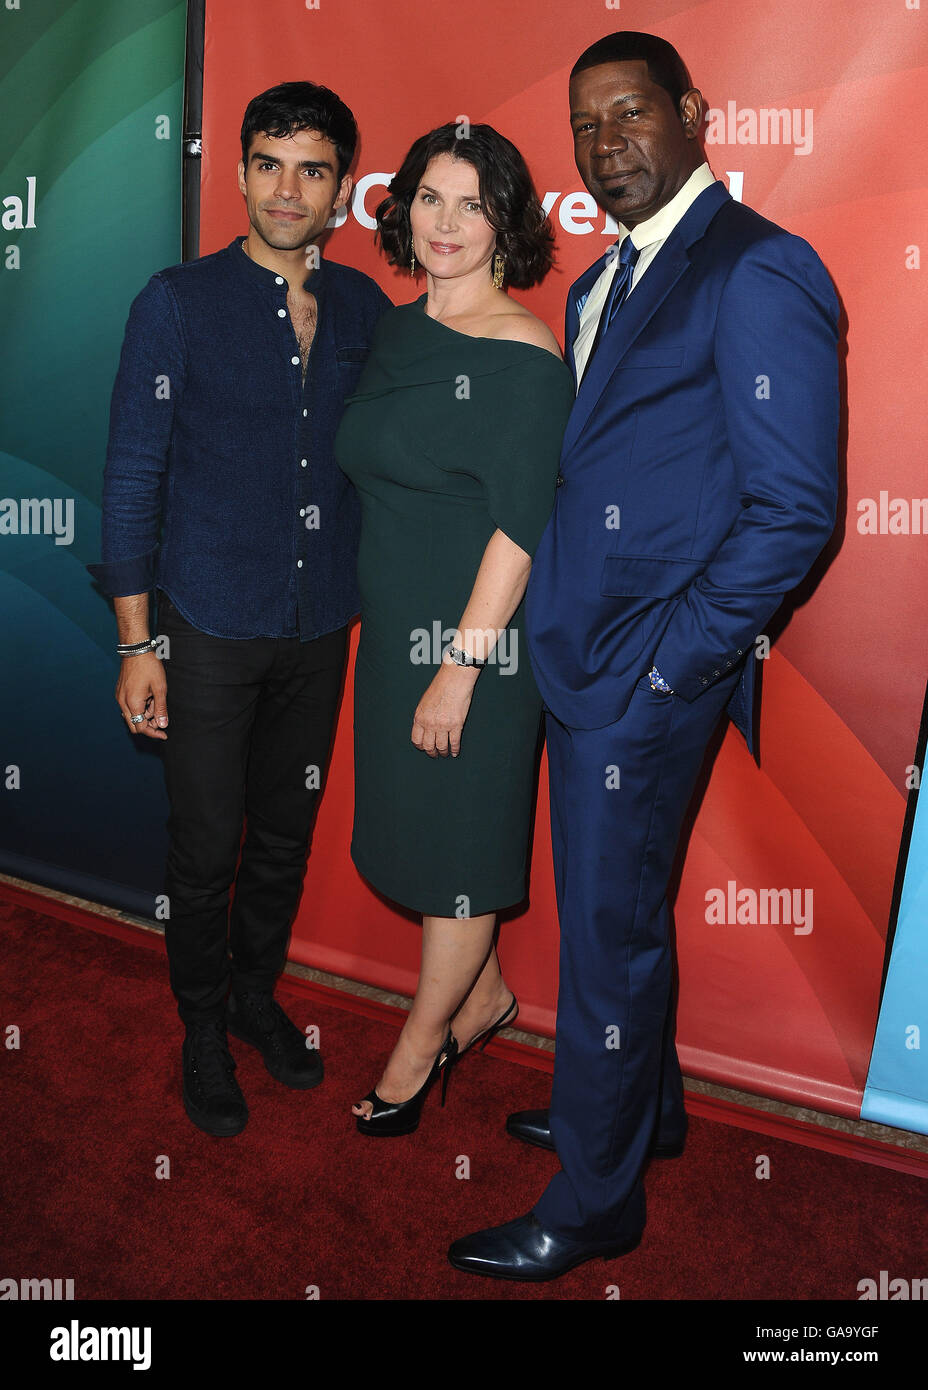 BEVERLY HILLS, CA - AUGUST 3:  Sean Teale, Julia Ormond and Sean TDennis Haysbert at the NBCUniversal 2016 Summer - Stock Image